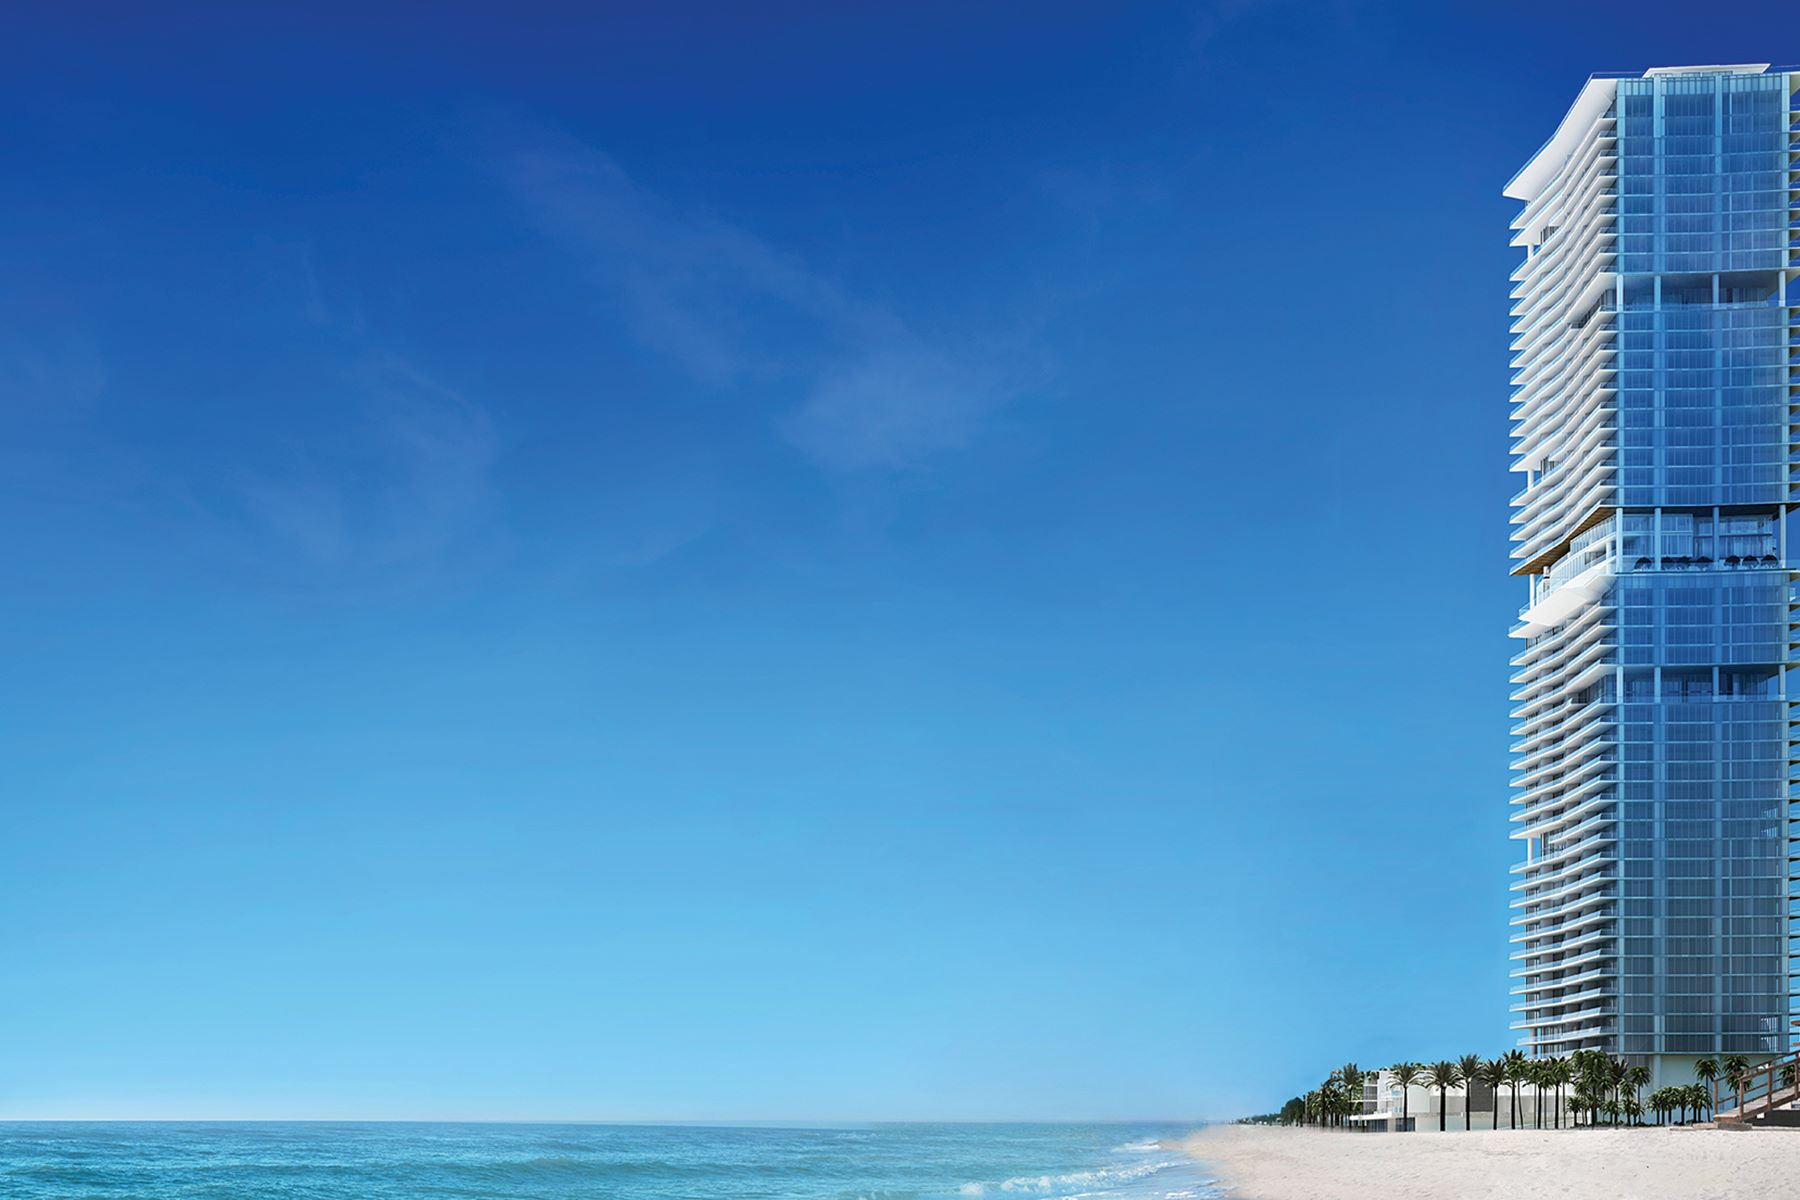 condominiums for Active at 18501 Collins Ave PH01 Sunny Isles Beach, Florida 33160 United States